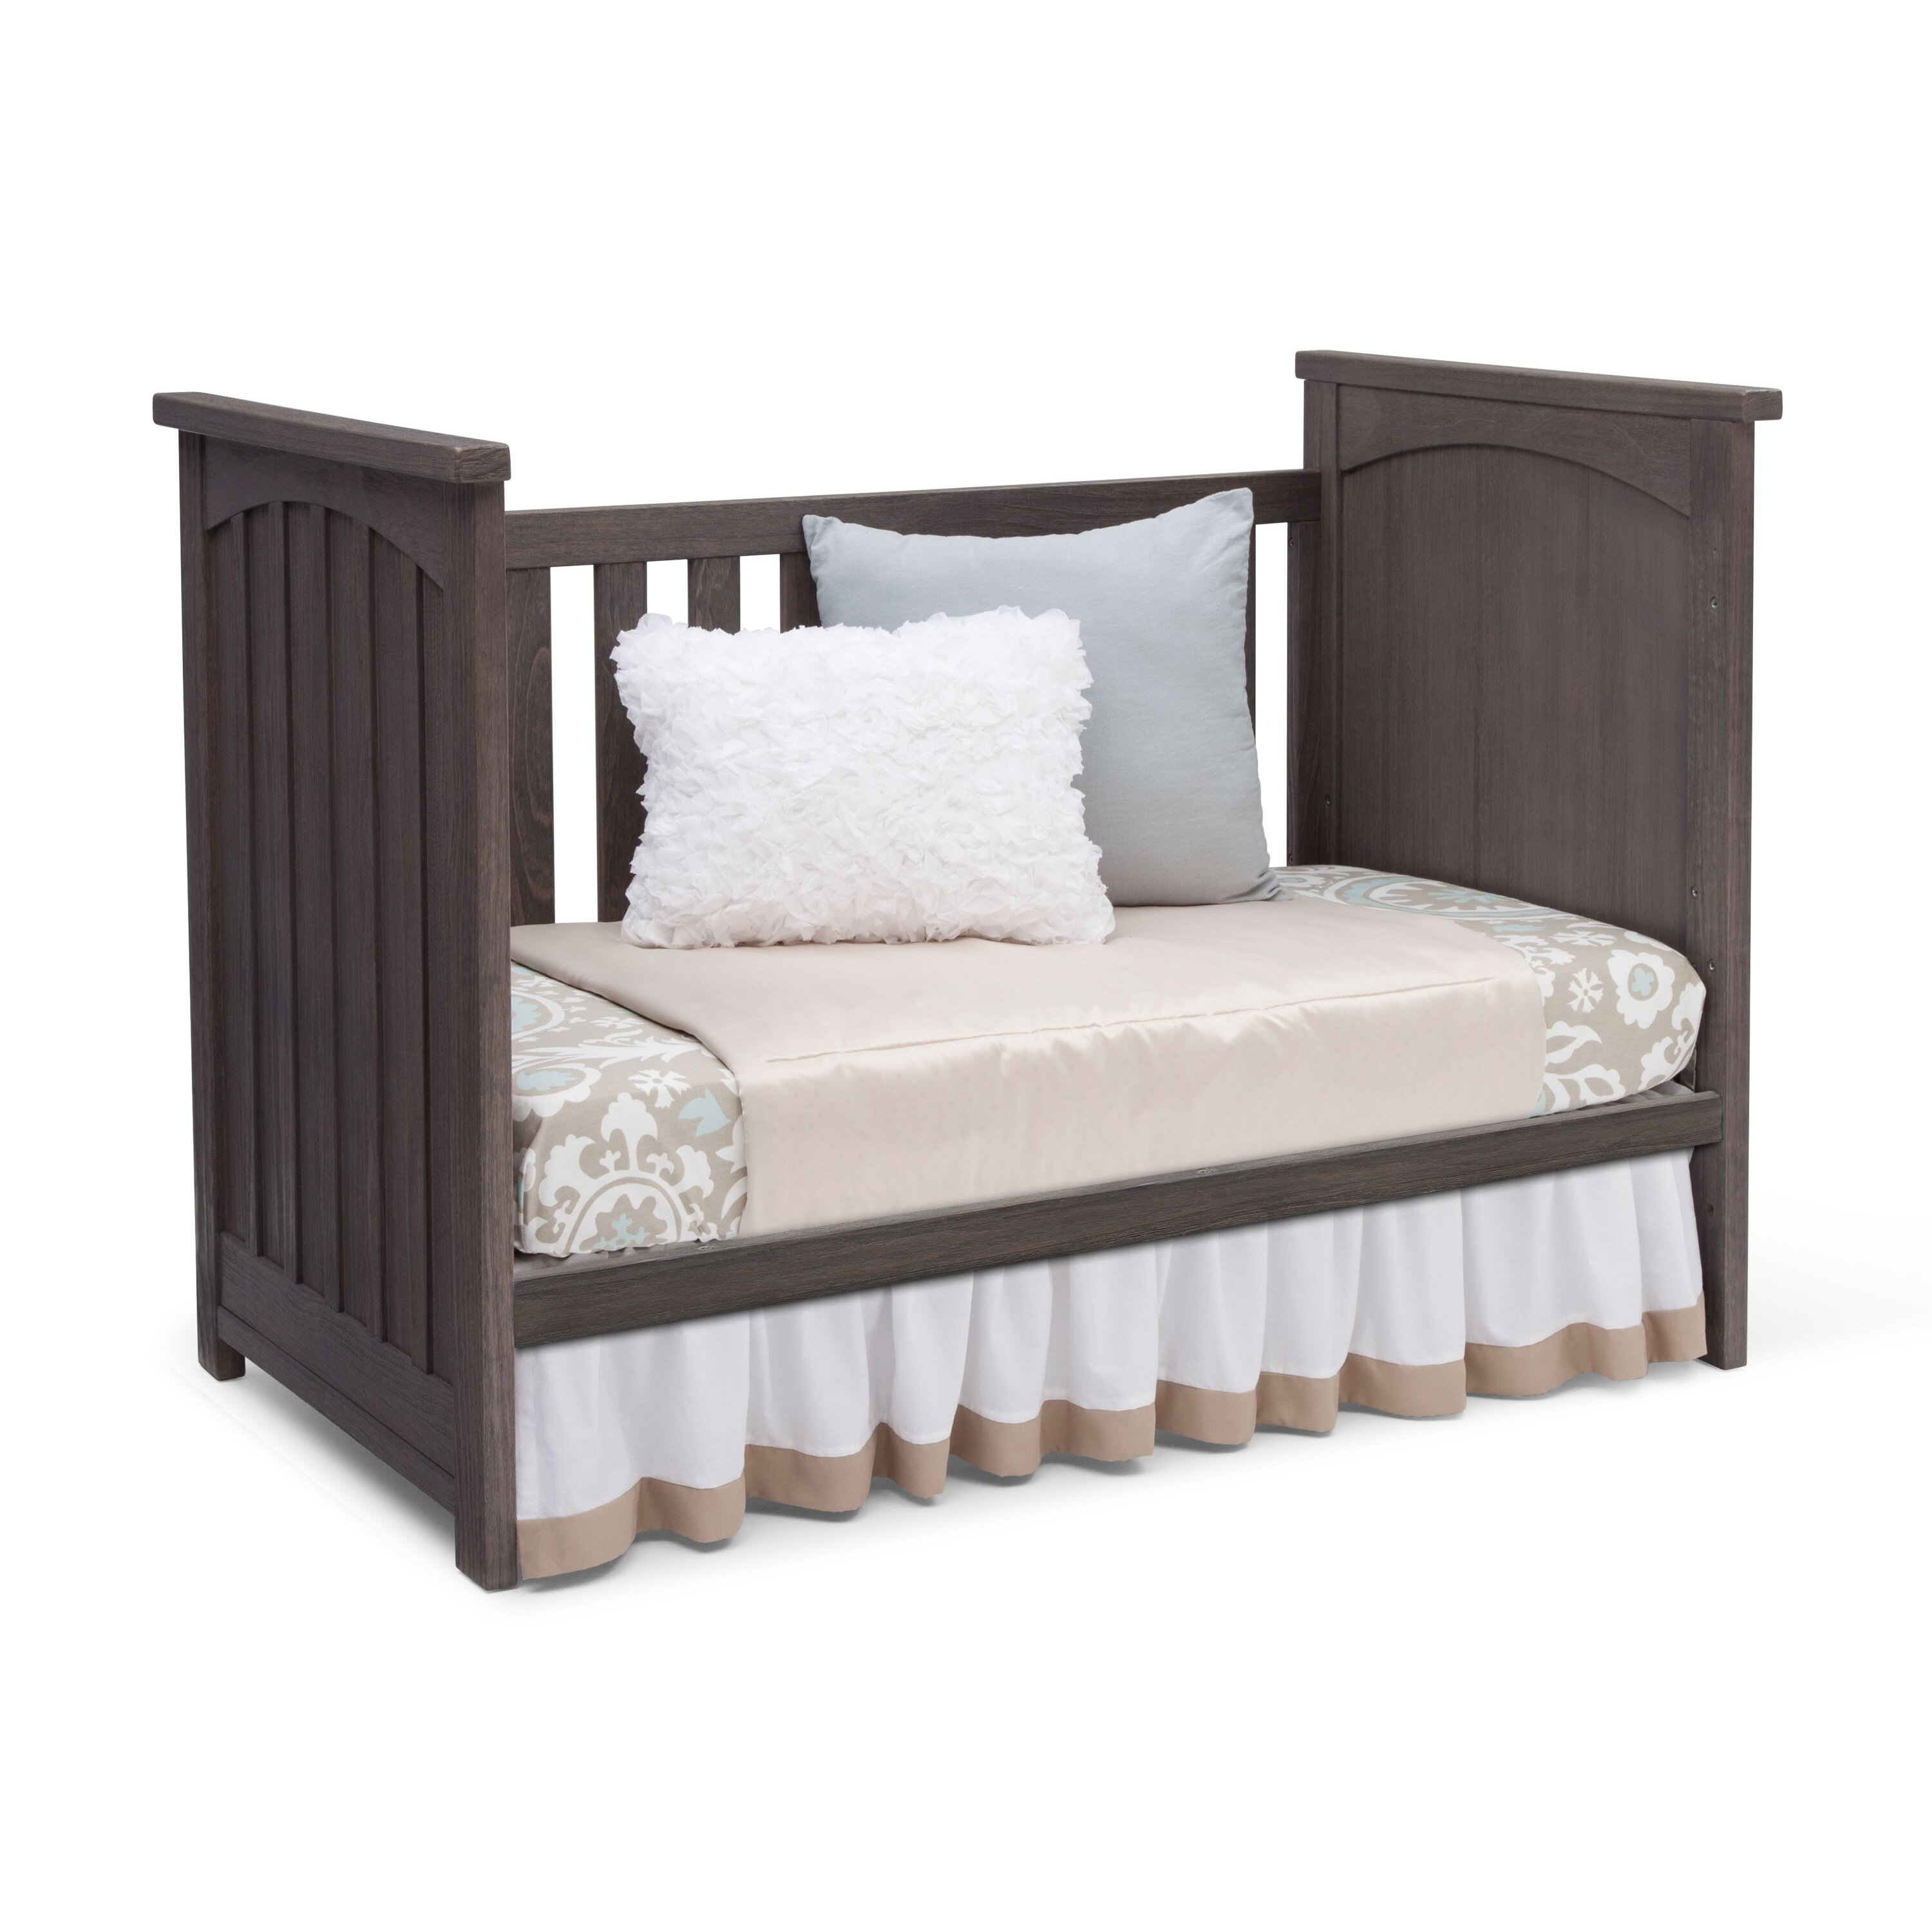 Serta Baby Crib Serta Northbrook Convertible Crib Reviews